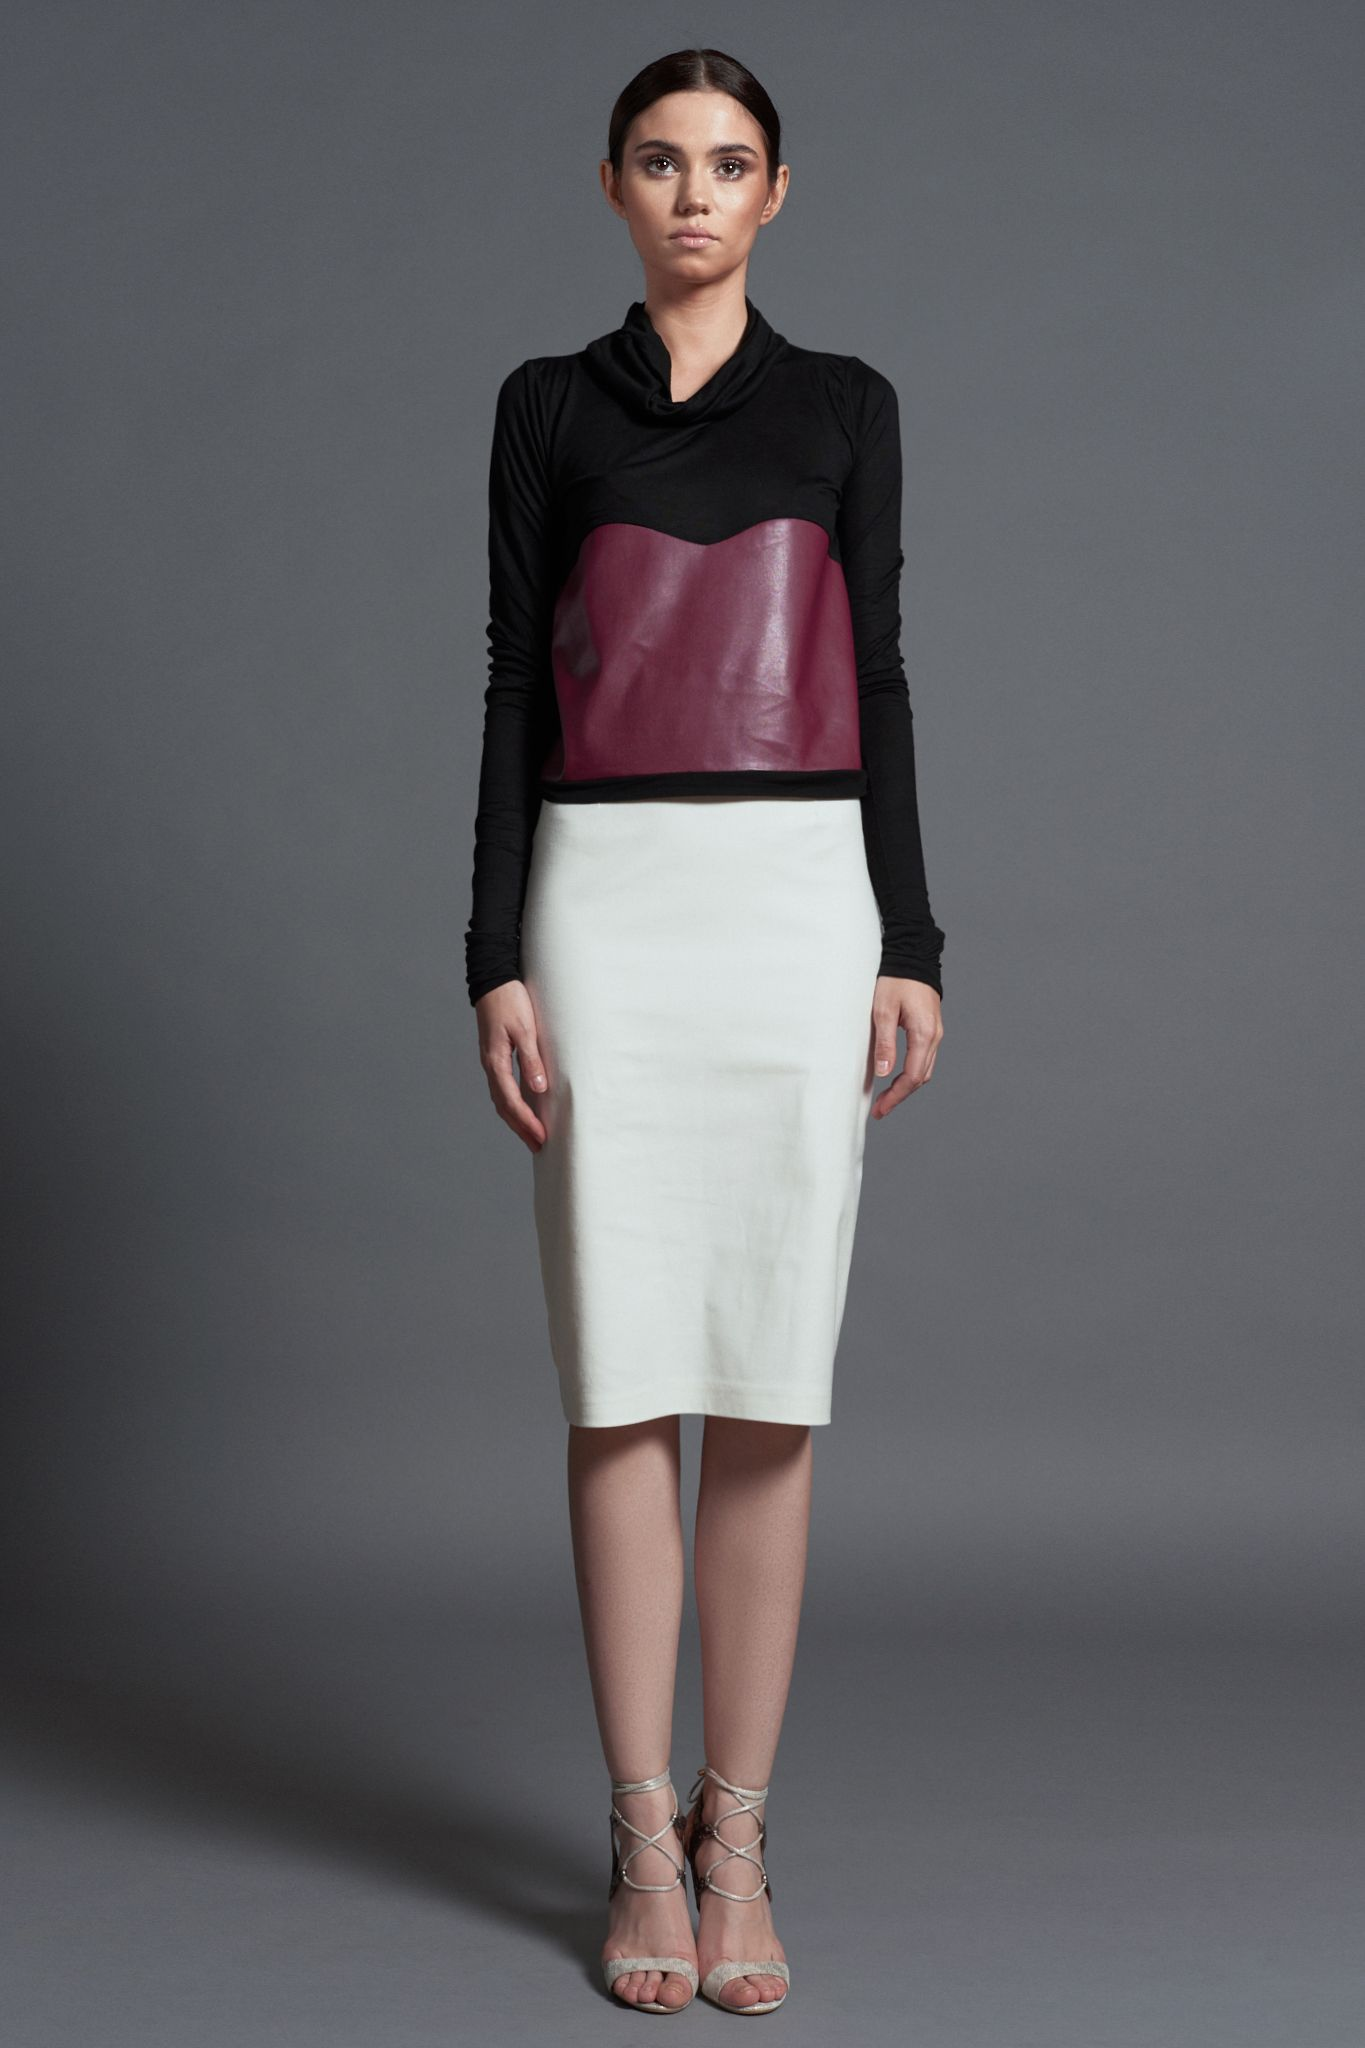 Lafayette Burgundy Blouse AW 2016-17 Office Collection Navitique